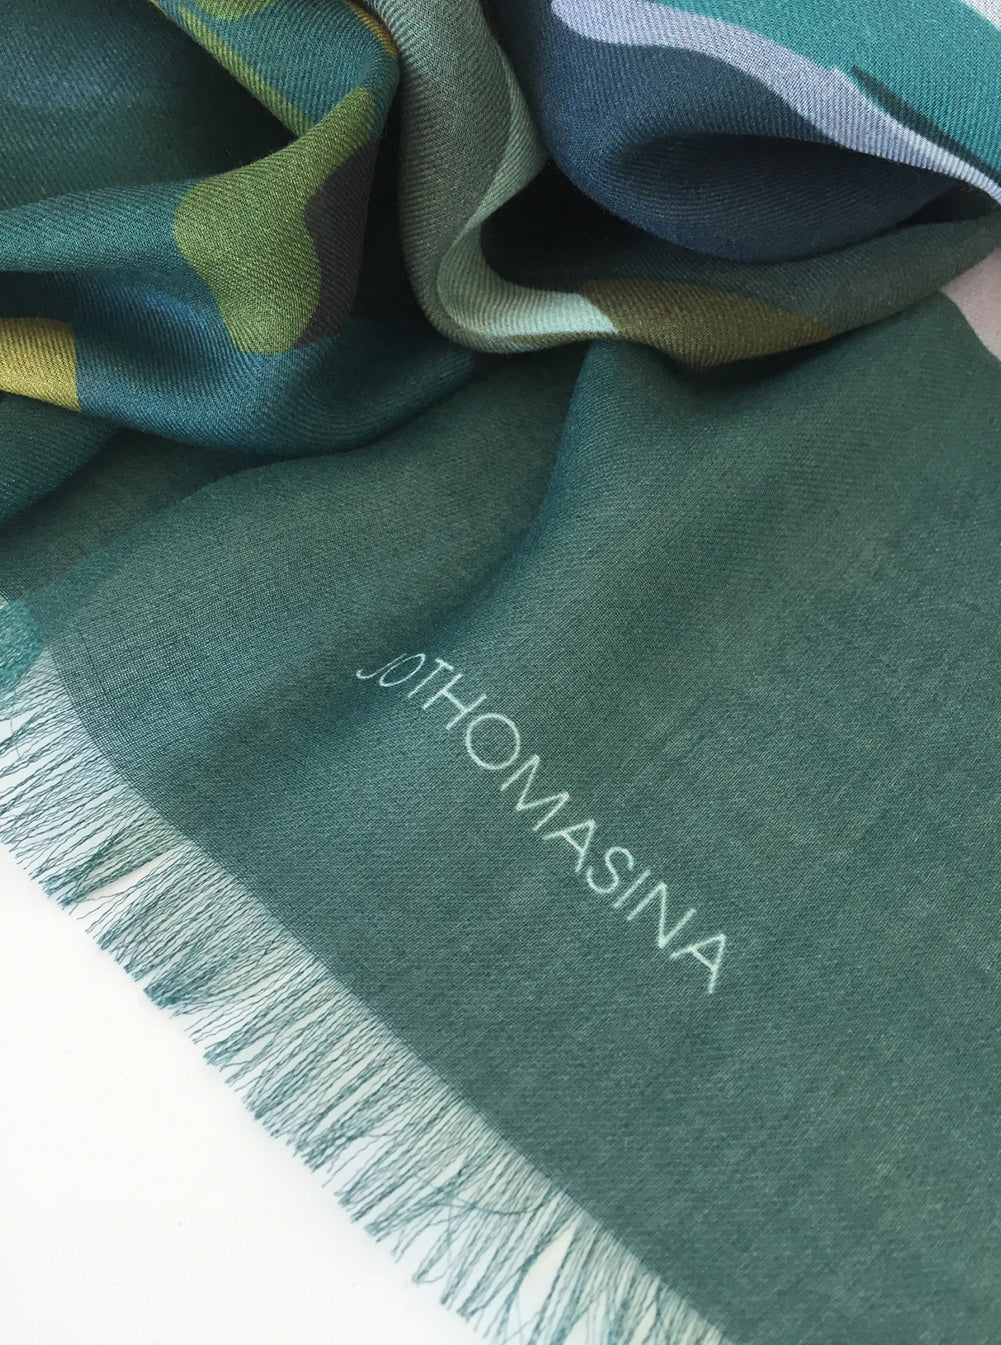 TOTALLY TEAL - Large Cashmere Blend Scarf